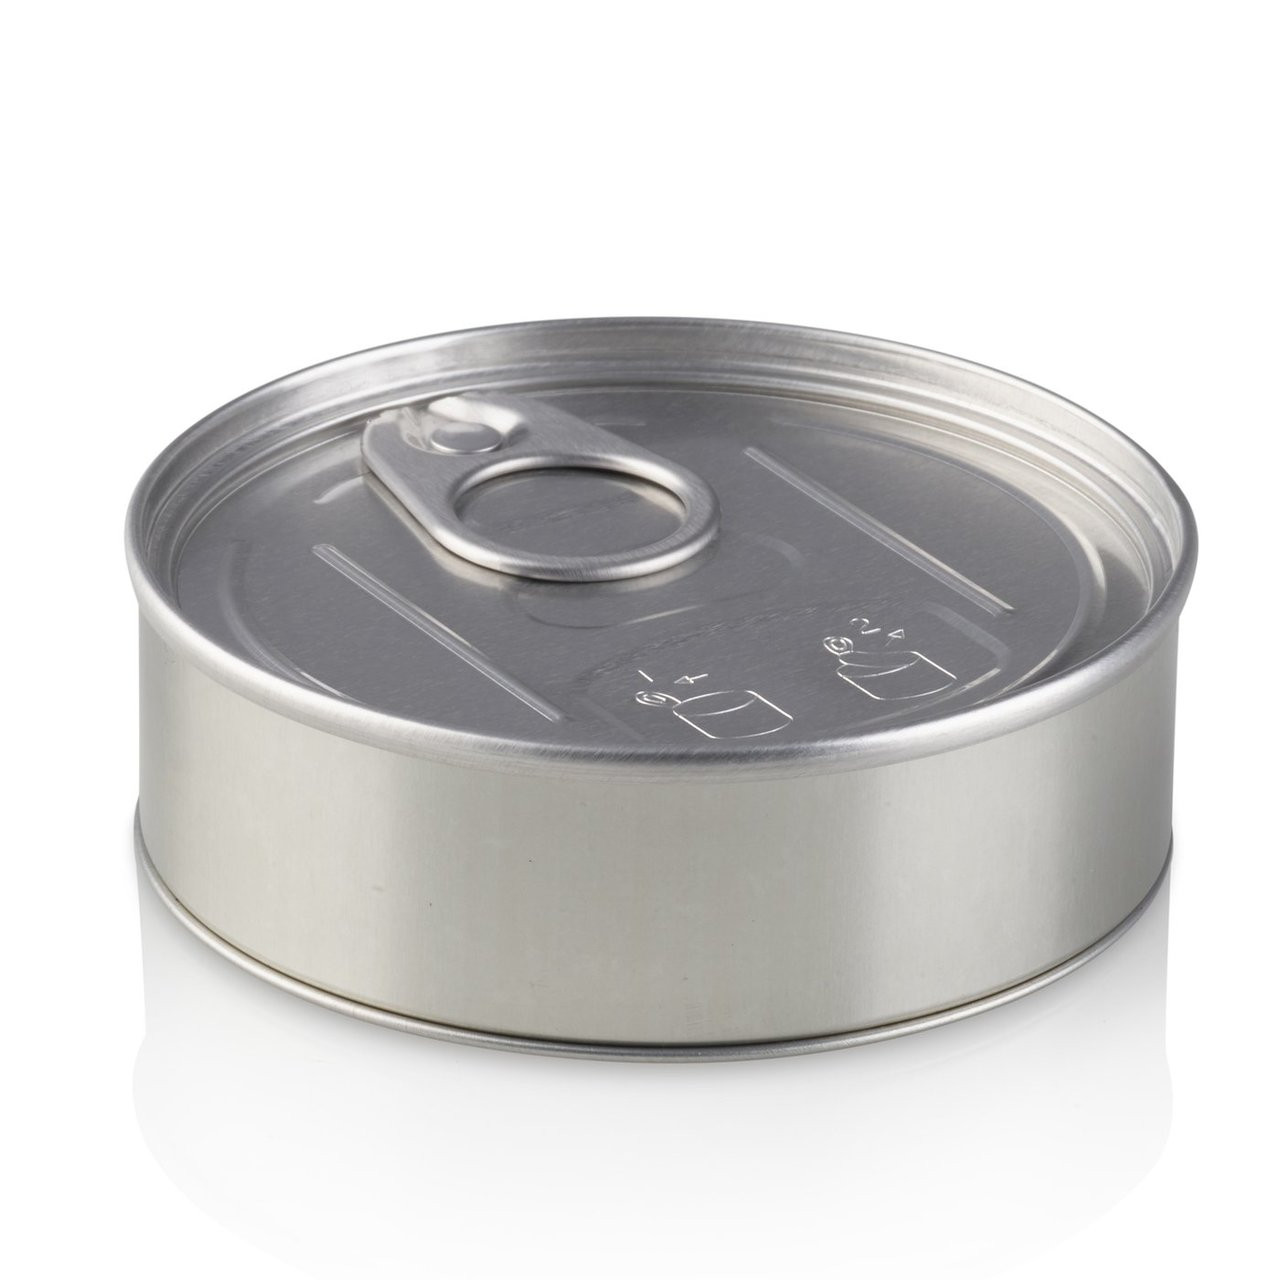 Baked Bean Tin With Ring Pull Lid - 100ml